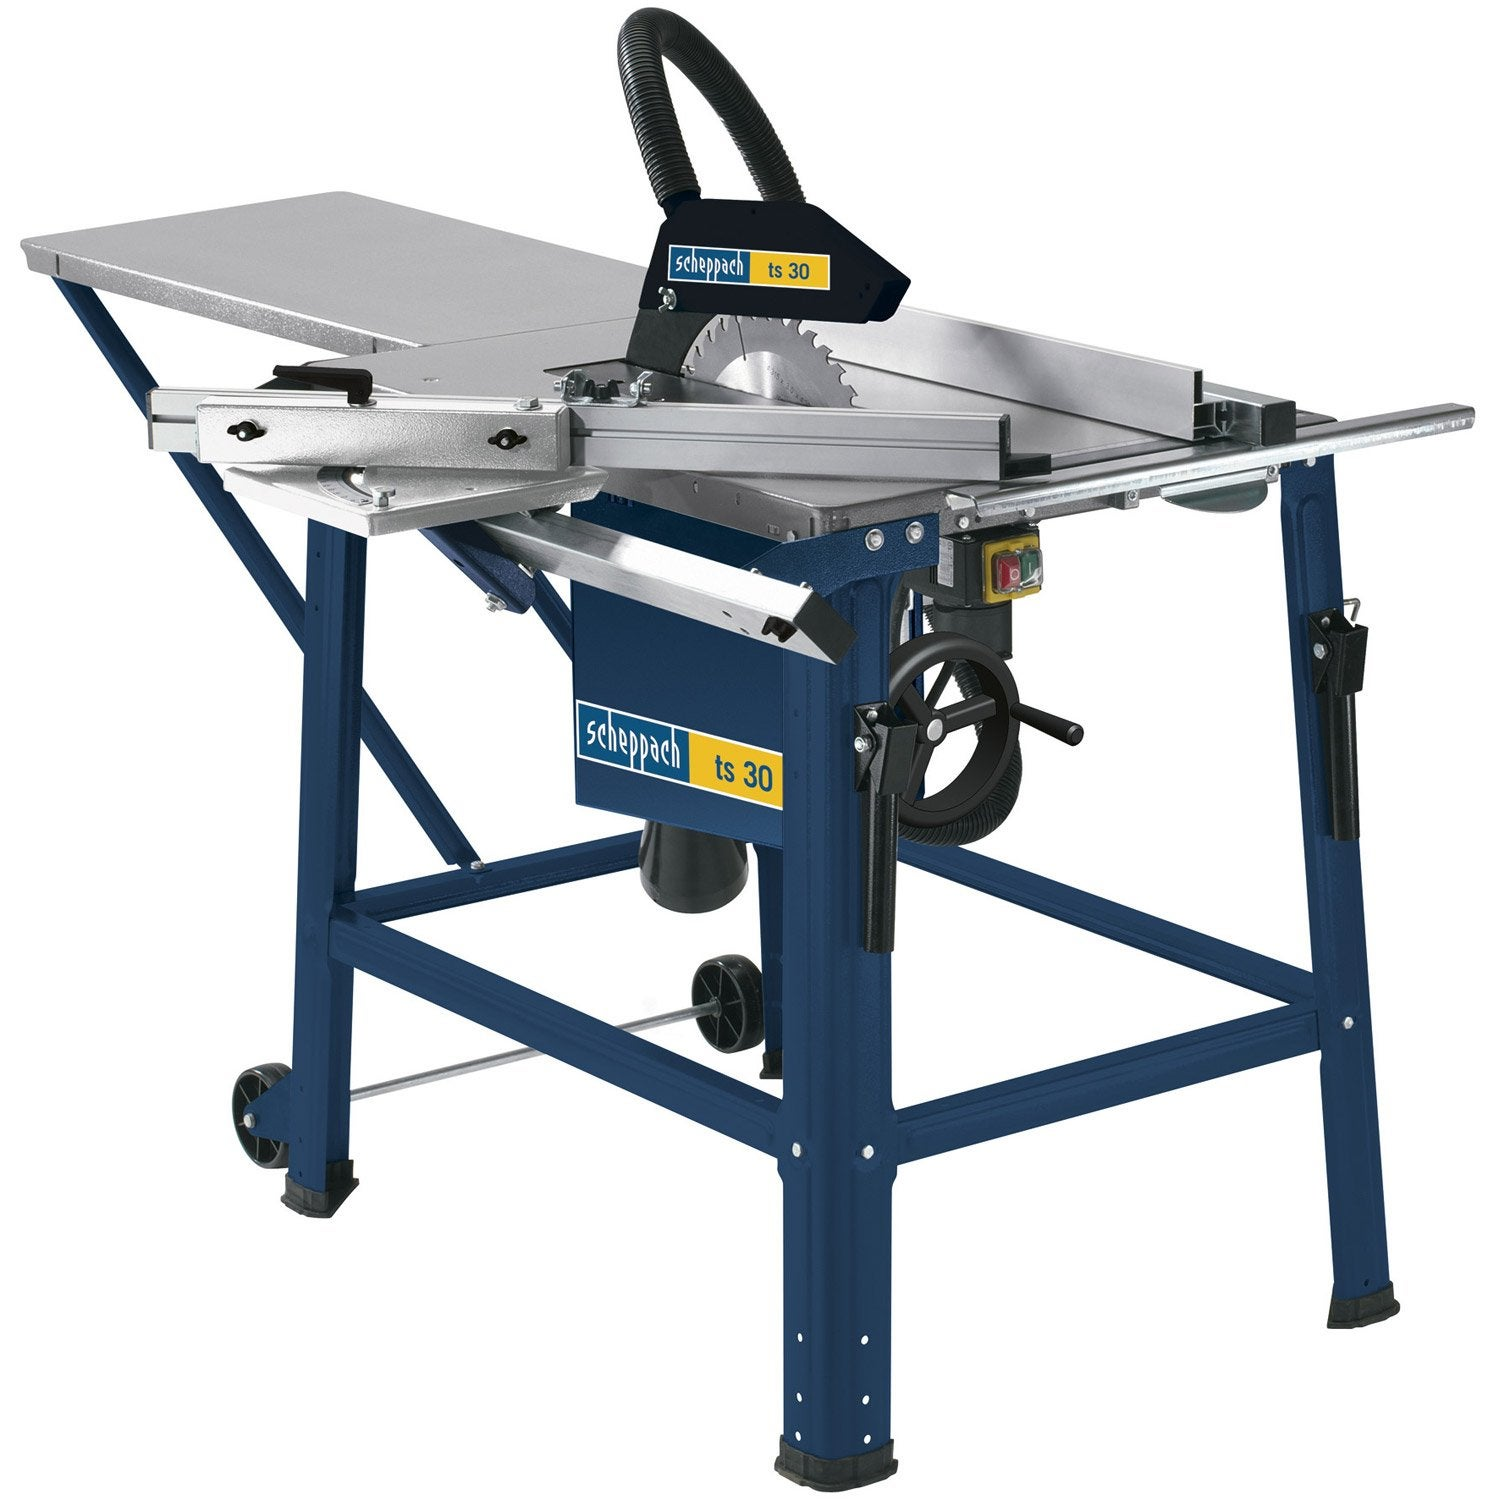 Scie circulaire de table scheppach ts30 2200 w leroy merlin - Table a tapisser leroy merlin ...